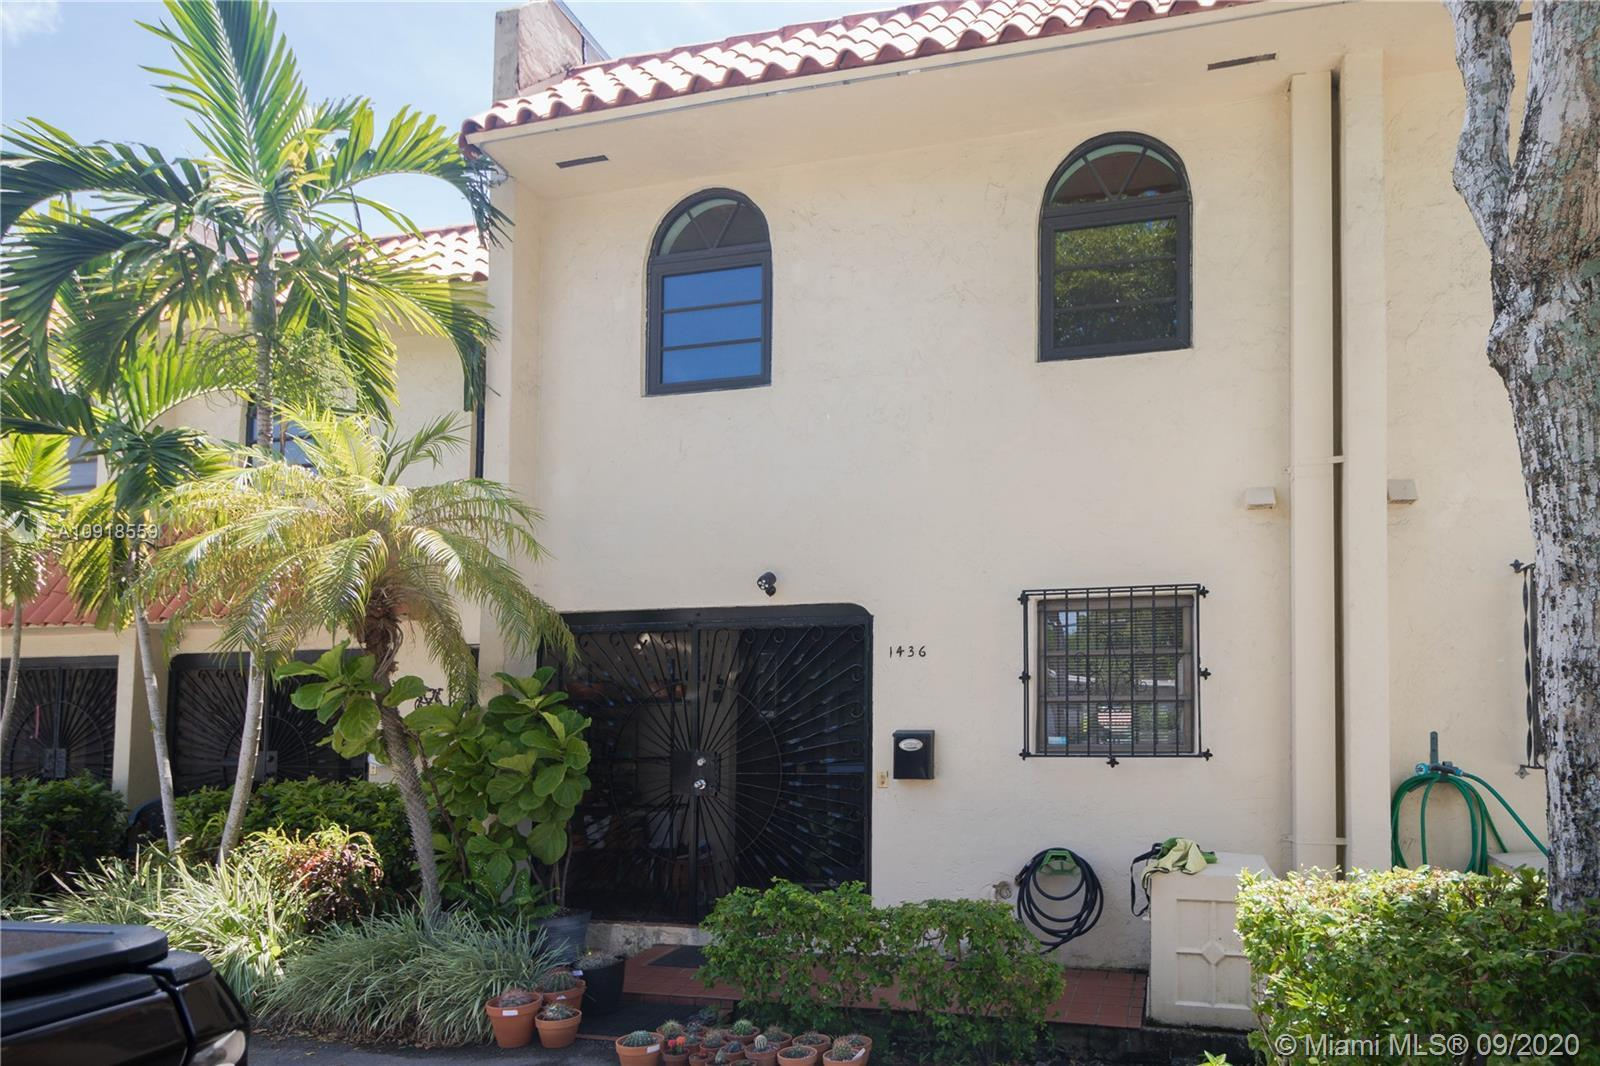 """BOATERS PARADISE A dream Condo on the water in one of the most desired areas in Florida, """"Miami Sho"""